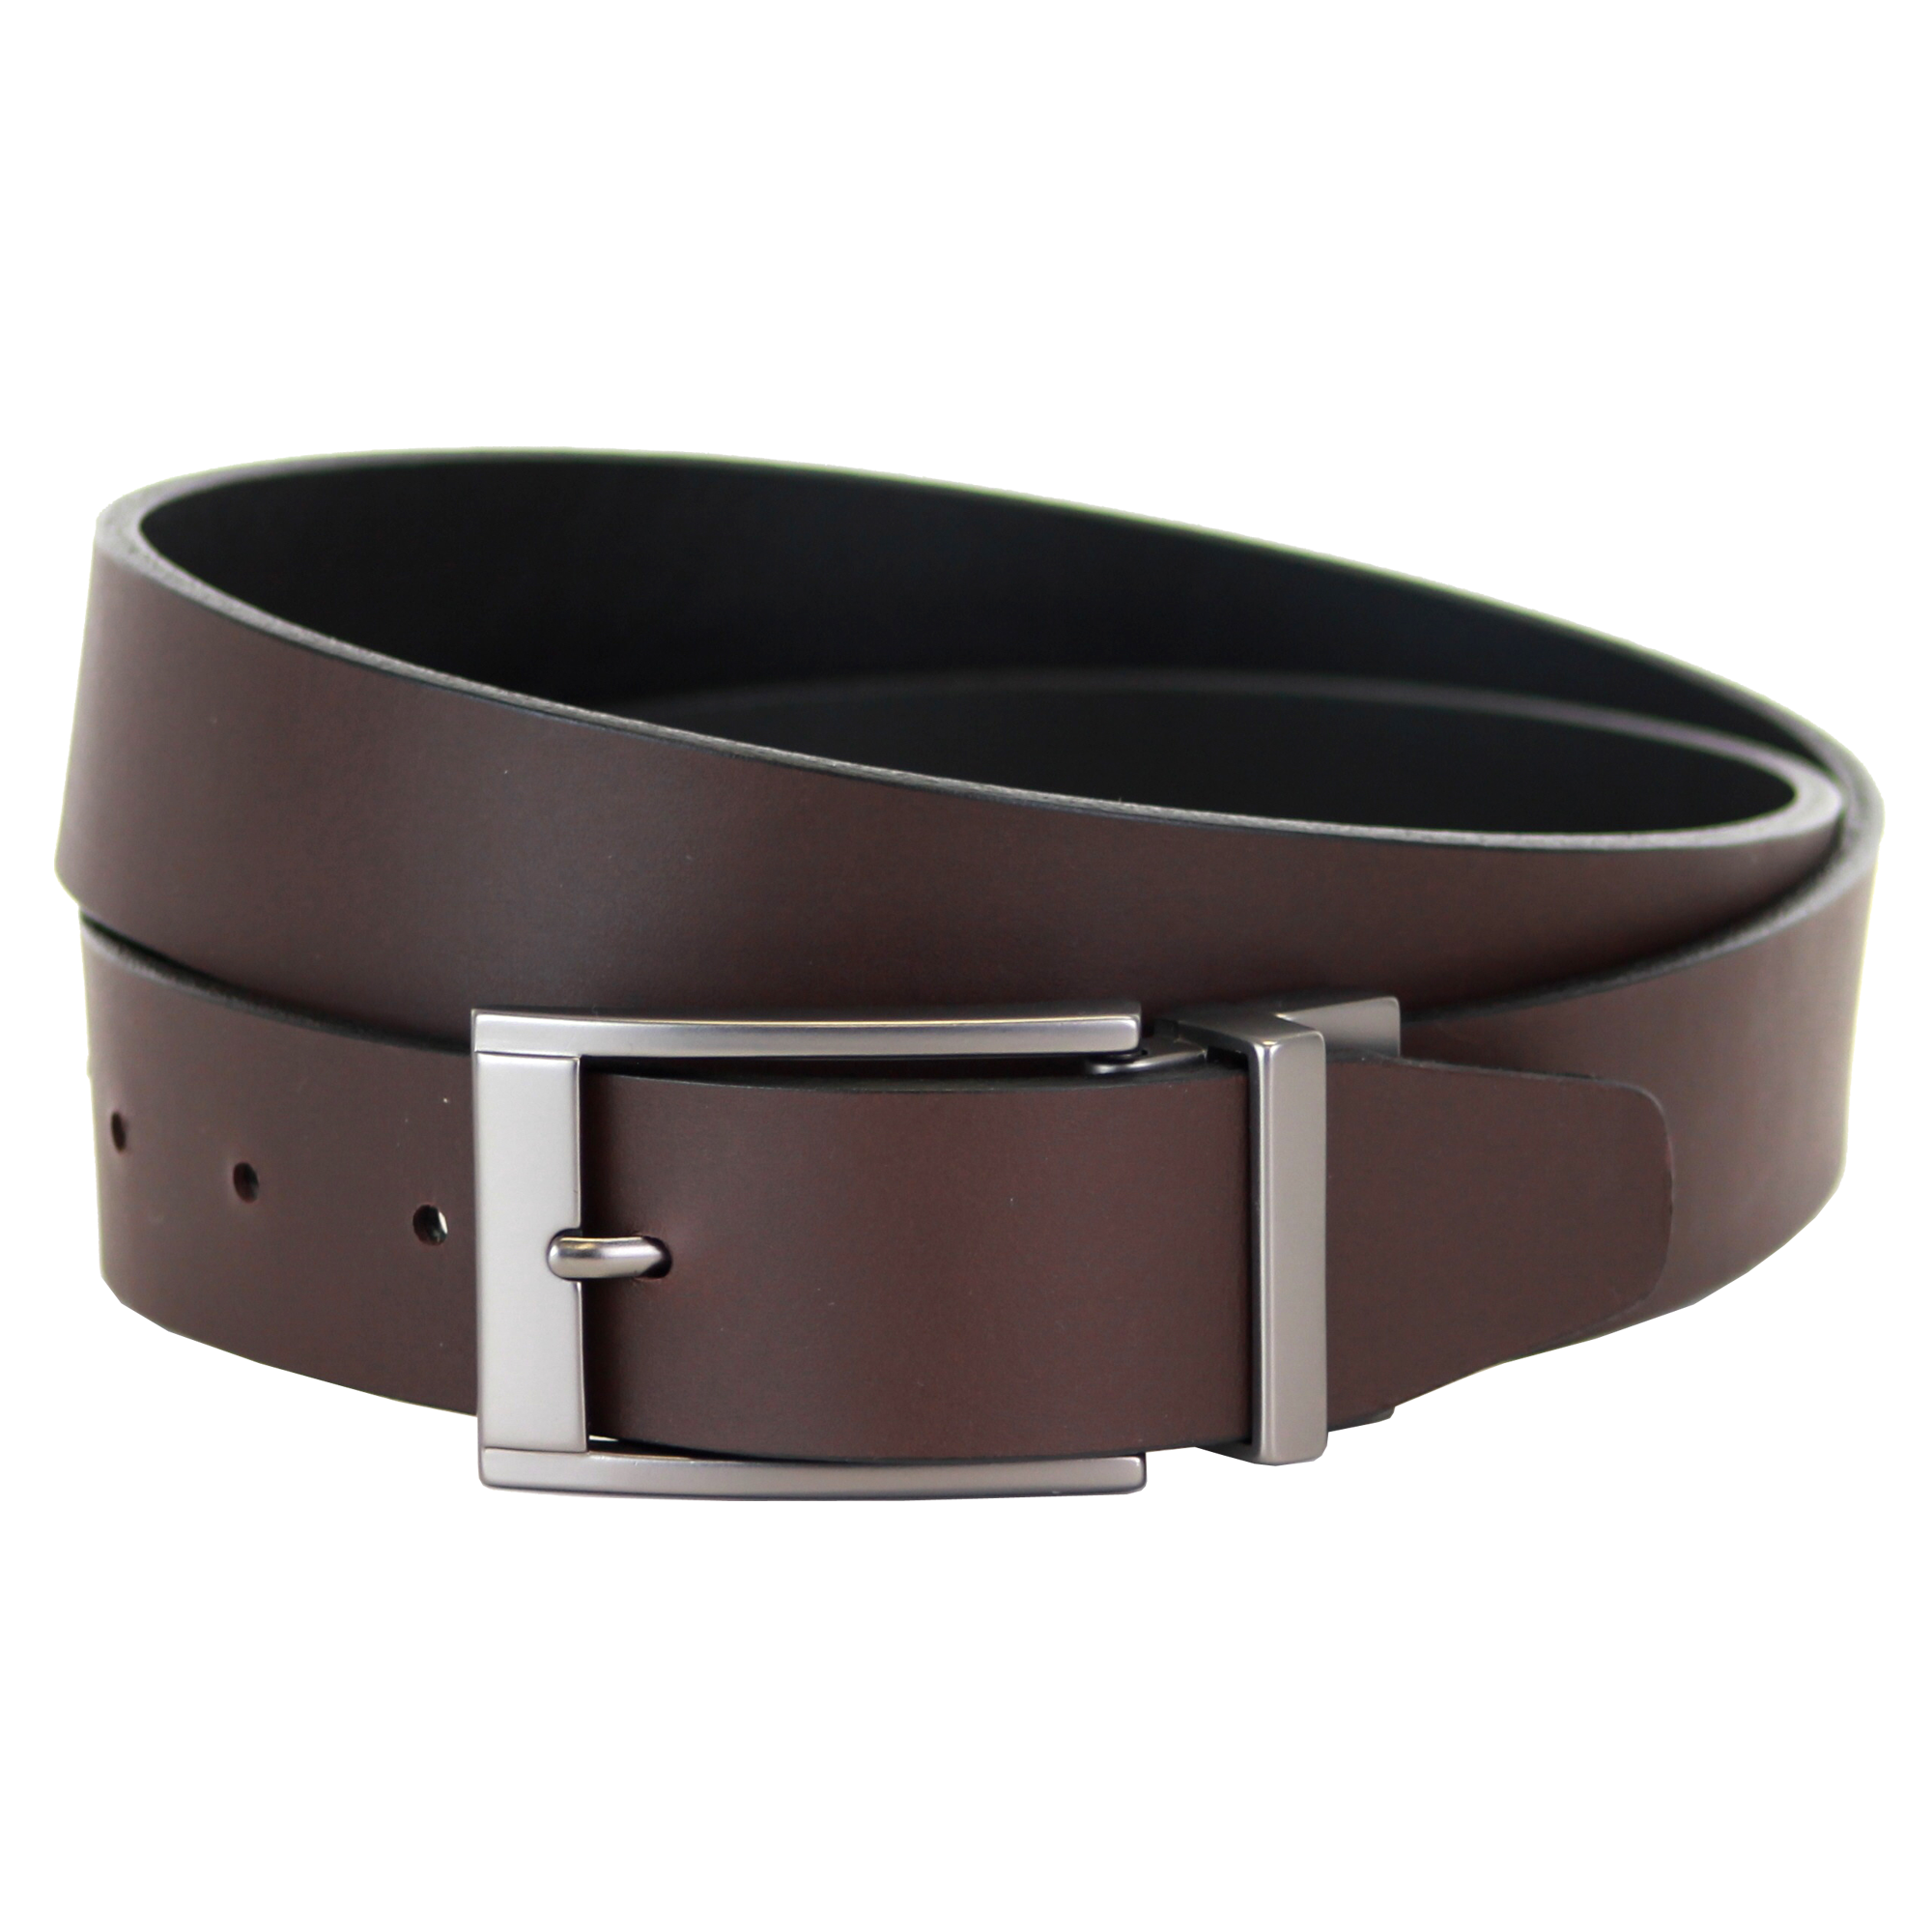 leather belt PNG image - Belt PNG